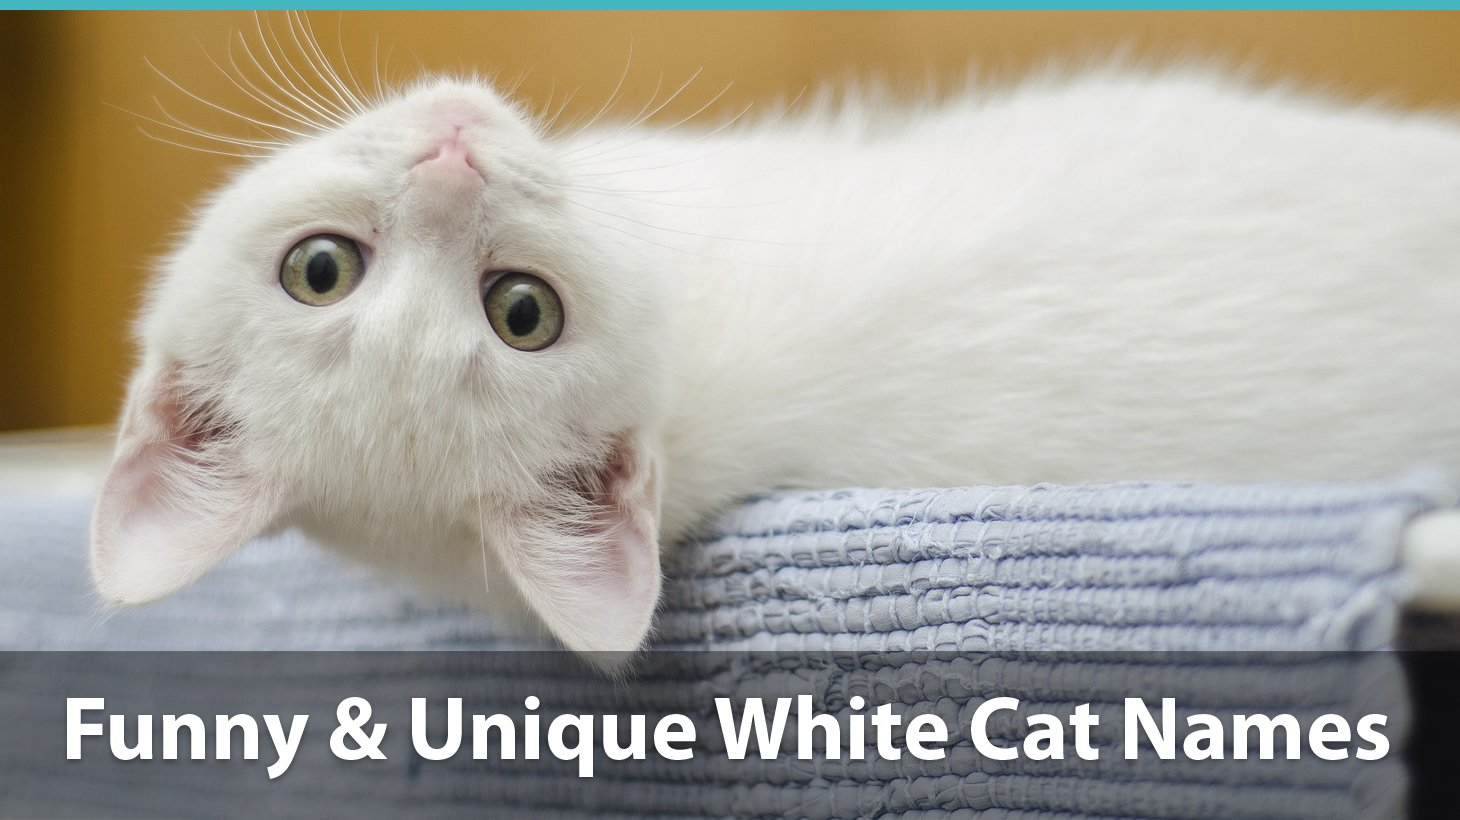 Top 150+ Names For White Cats: Funny, Traditional, Unique, And More!